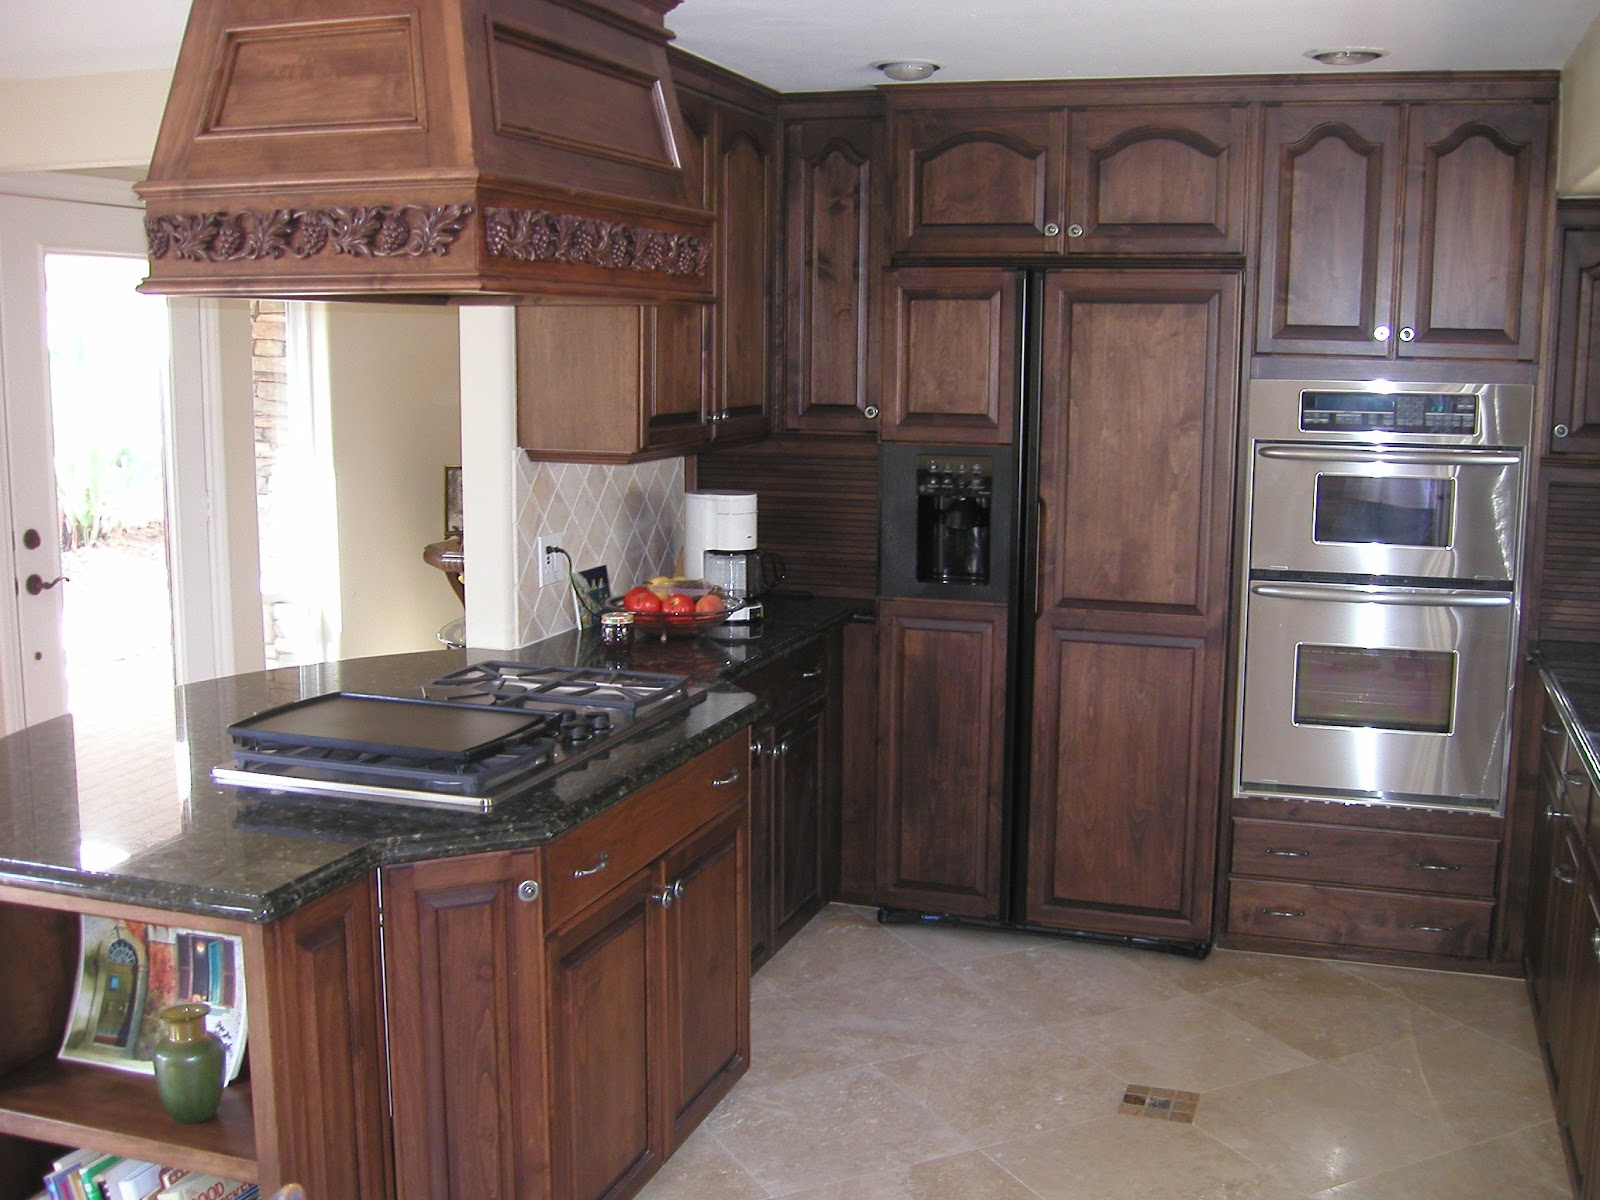 Home design ideas oak kitchen cabinets design ideas for Kitchen units design ideas